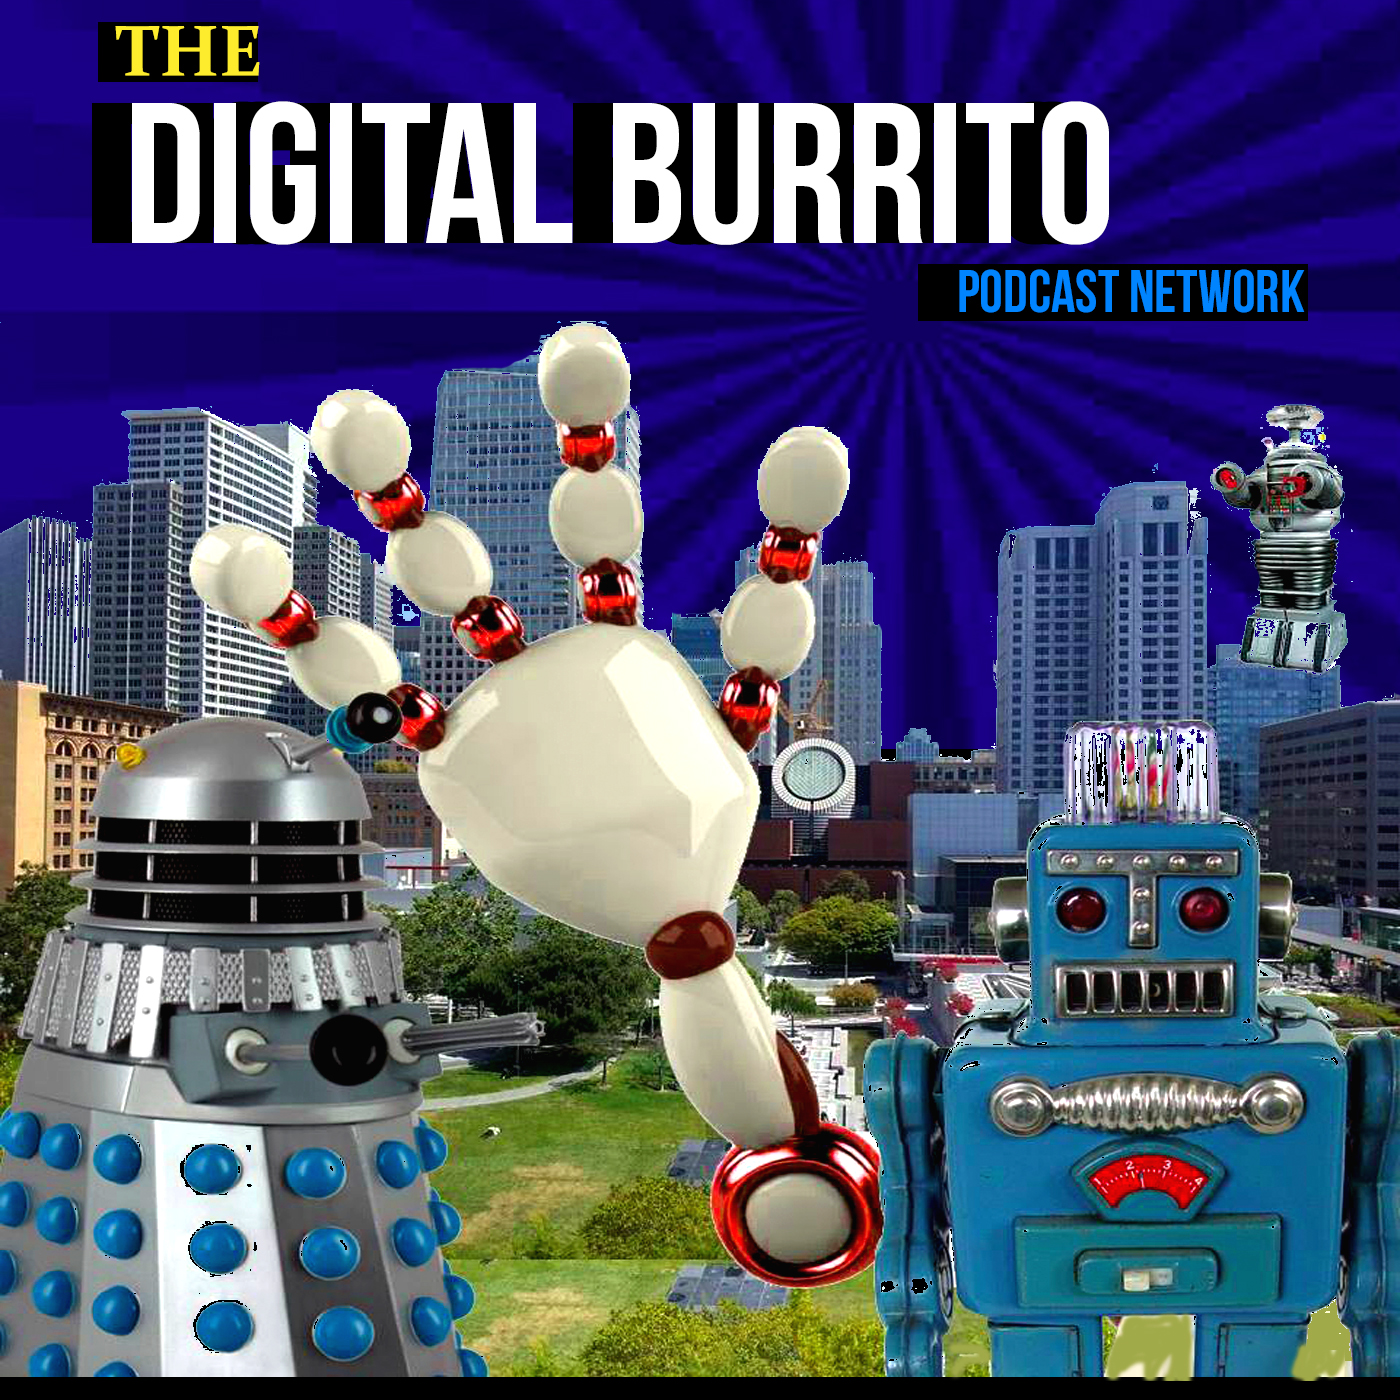 Digital Burrito Podcast Network